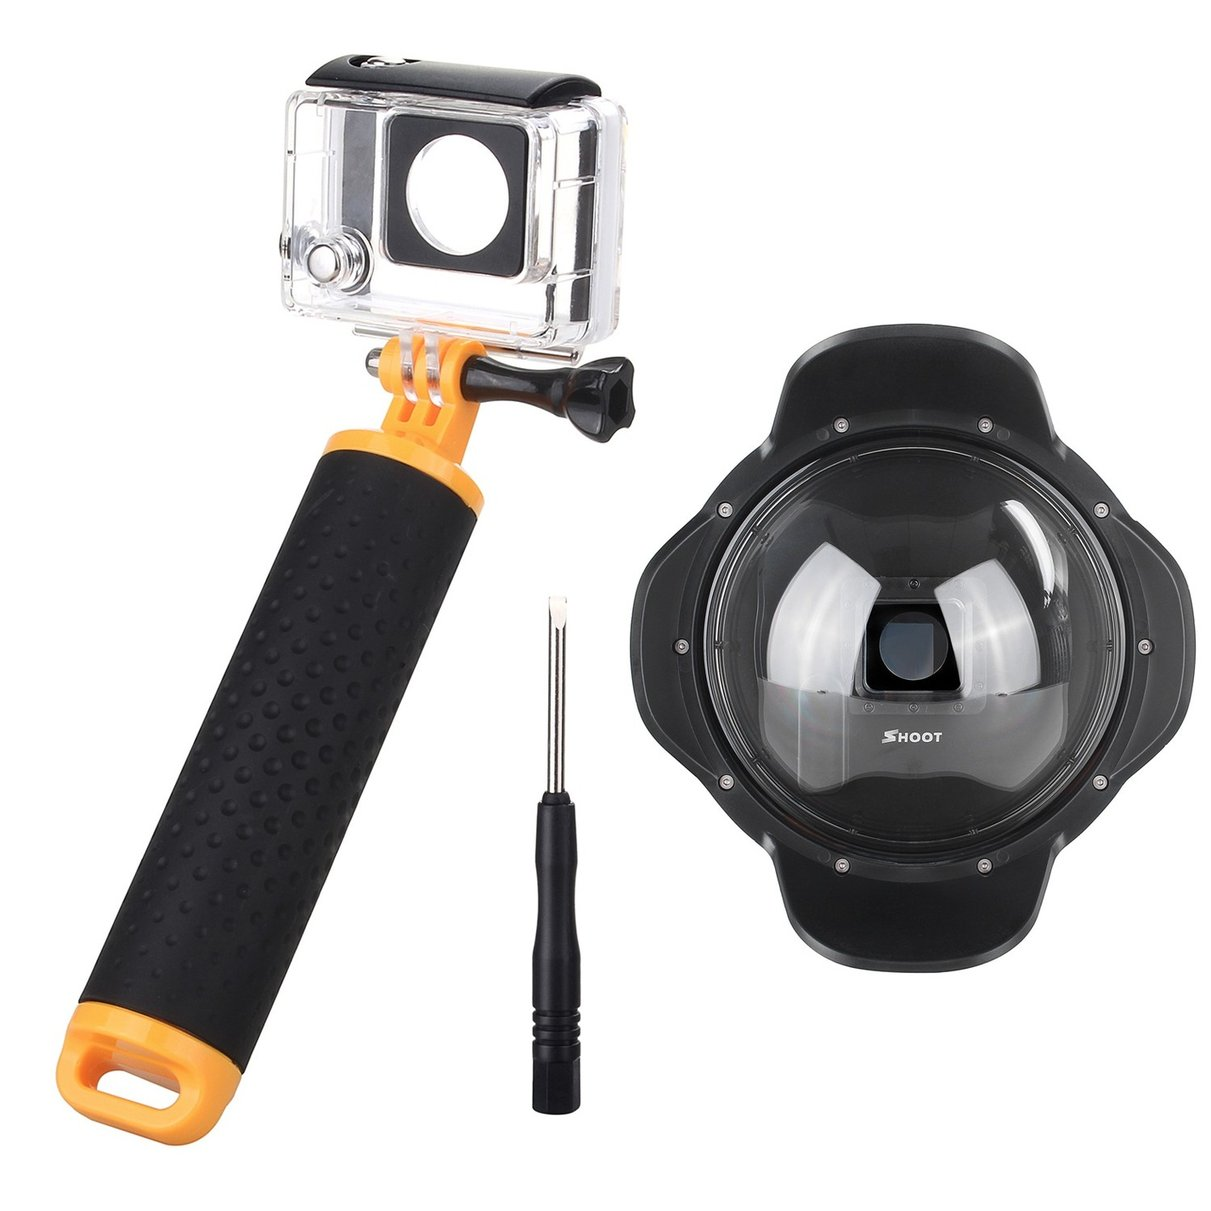 Shoot 6'' Diving Underwater Photography for Gopro Dome Port Cover with Floaty Handle with Lens Hood for GoPro Hero 3+/4 telesin dome port diving photography floaty handle for gopro hero 4 camera os802